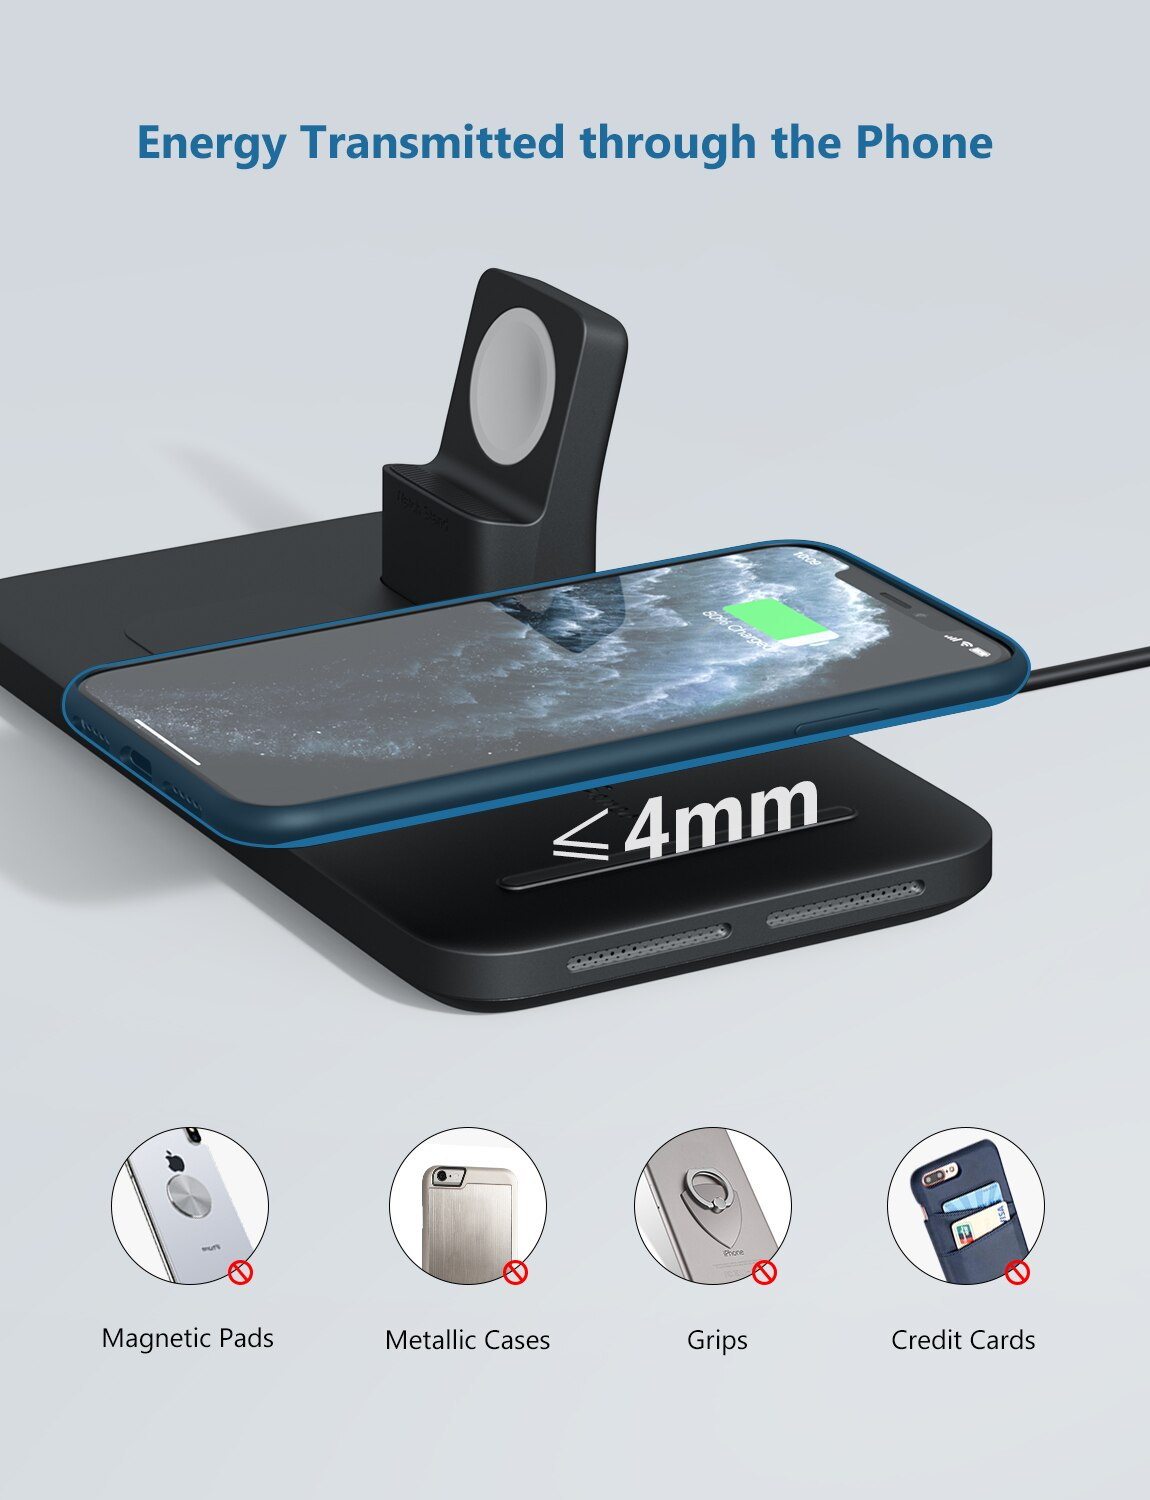 H0f842632906a400dad1ad99d3fb5e420g - Seneo PA202 Wireless Charger 3 in 1 for iPhone 12 11 Wireless Charging Pad for AirPods Pro 2 Charging Dock for iWatch 5 4 3 2